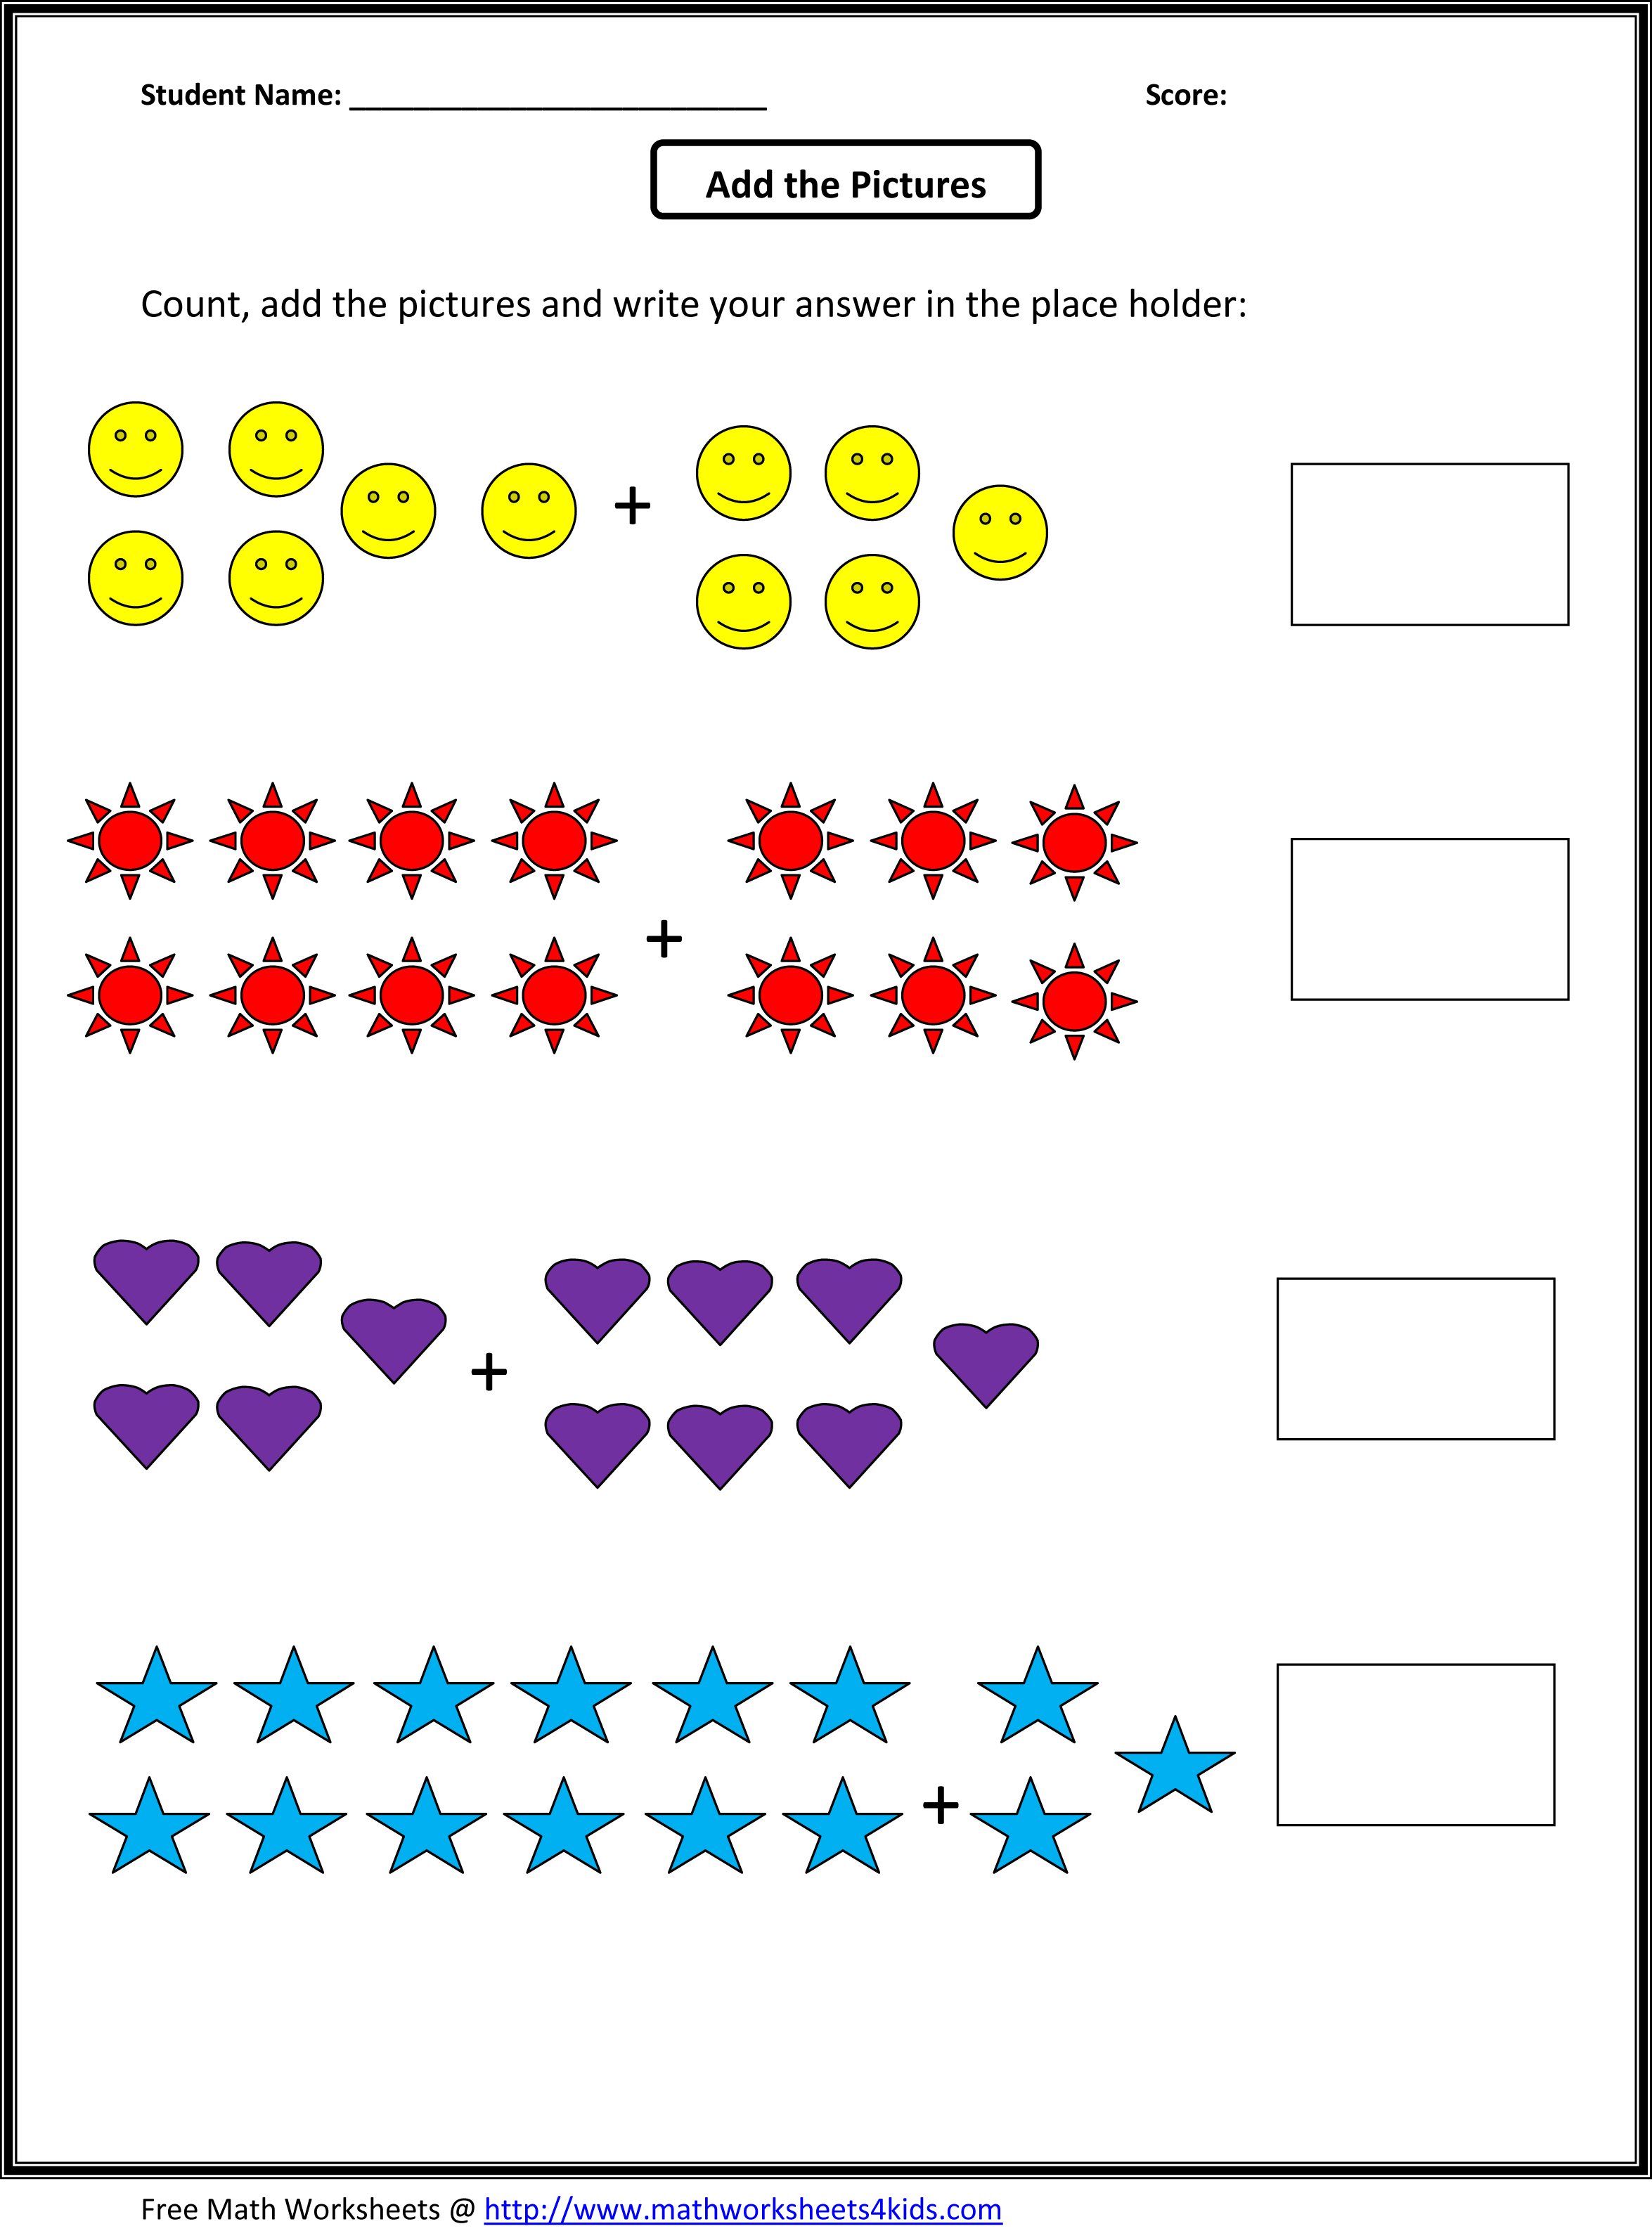 Aldiablosus  Sweet Grade  Maths Worksheet  Reocurent With Lovely Math Worksheets For St Grade Free  Reocurent With Appealing Spanish Color Worksheets Also Noun Verb Adjective Adverb Worksheet In Addition Flower Worksheets And Social Skills Worksheets Free As Well As Setting Of A Story Worksheets Additionally Powers Of Ten Worksheets From Reocurentcom With Aldiablosus  Lovely Grade  Maths Worksheet  Reocurent With Appealing Math Worksheets For St Grade Free  Reocurent And Sweet Spanish Color Worksheets Also Noun Verb Adjective Adverb Worksheet In Addition Flower Worksheets From Reocurentcom